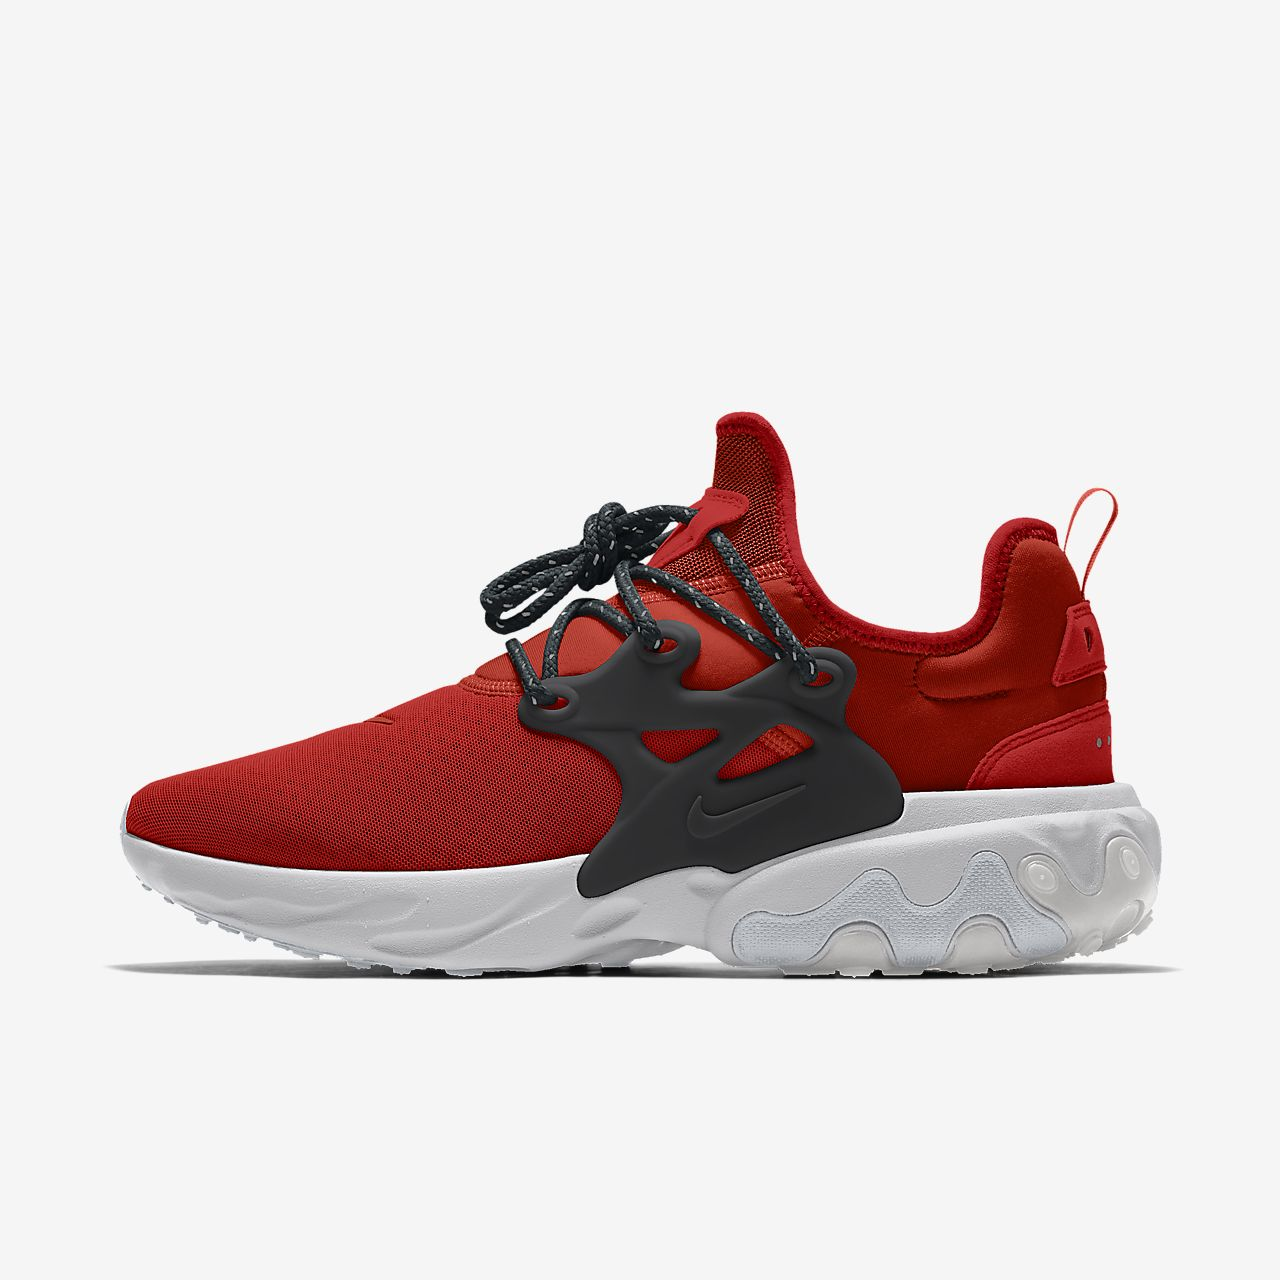 Specialdesignad sko Nike React Presto By You för män